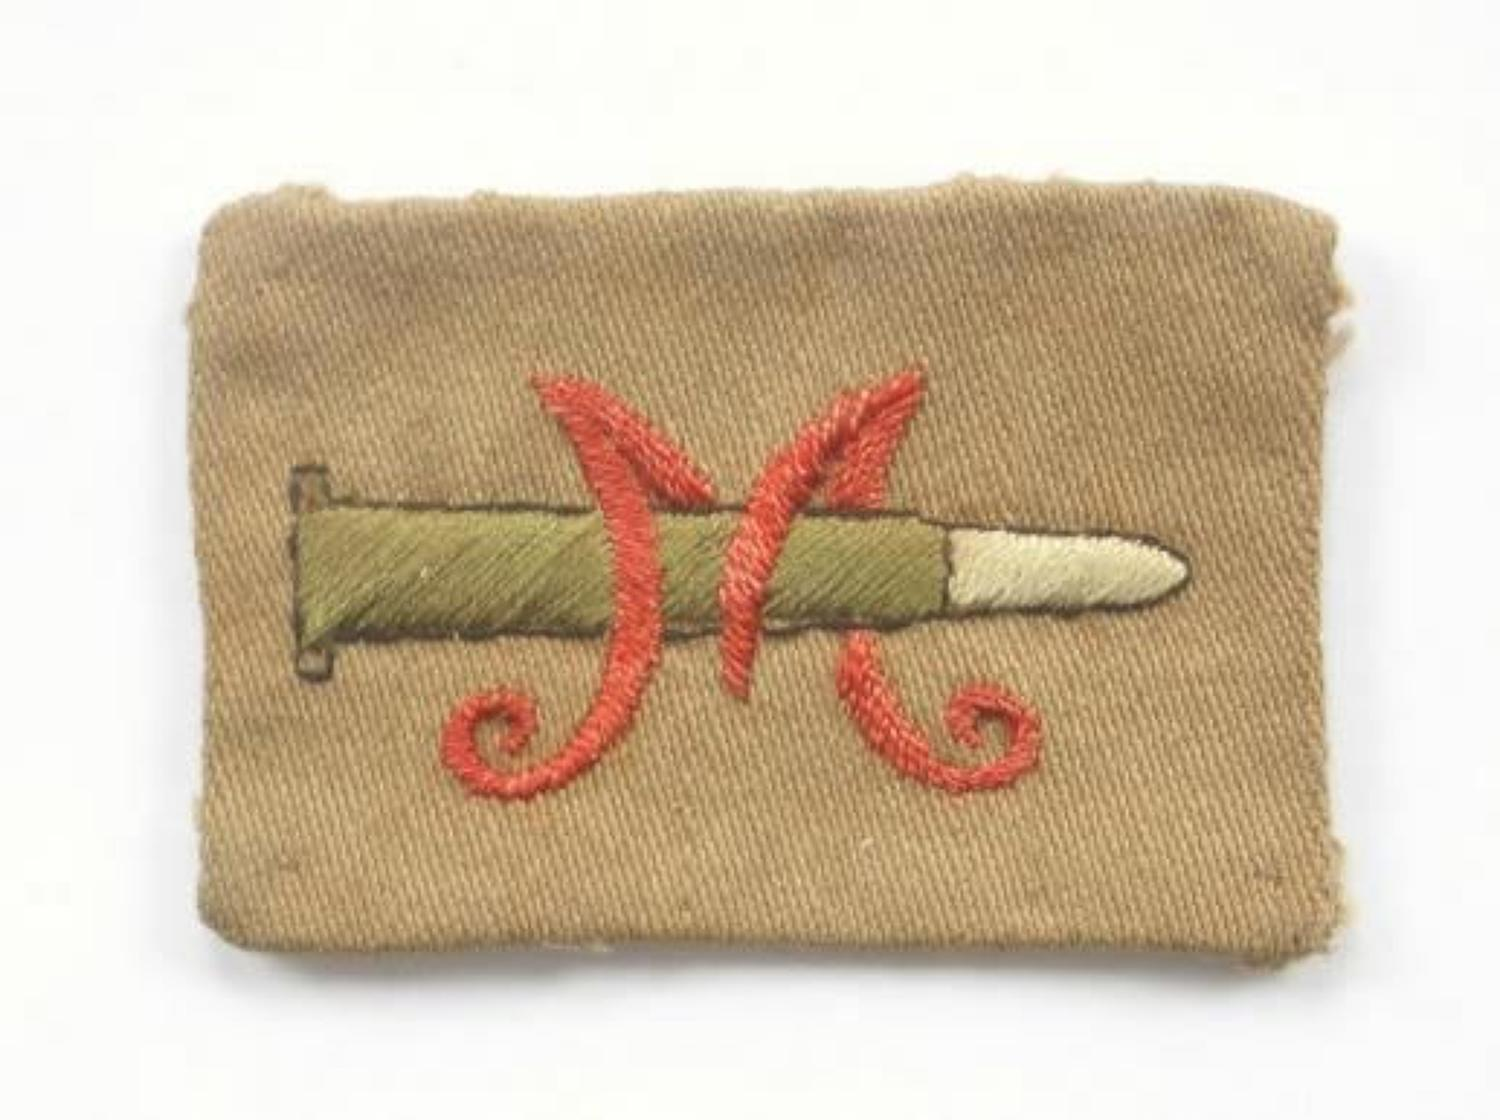 Volunteer Training Corps WWI VTC Marksman's cloth badge